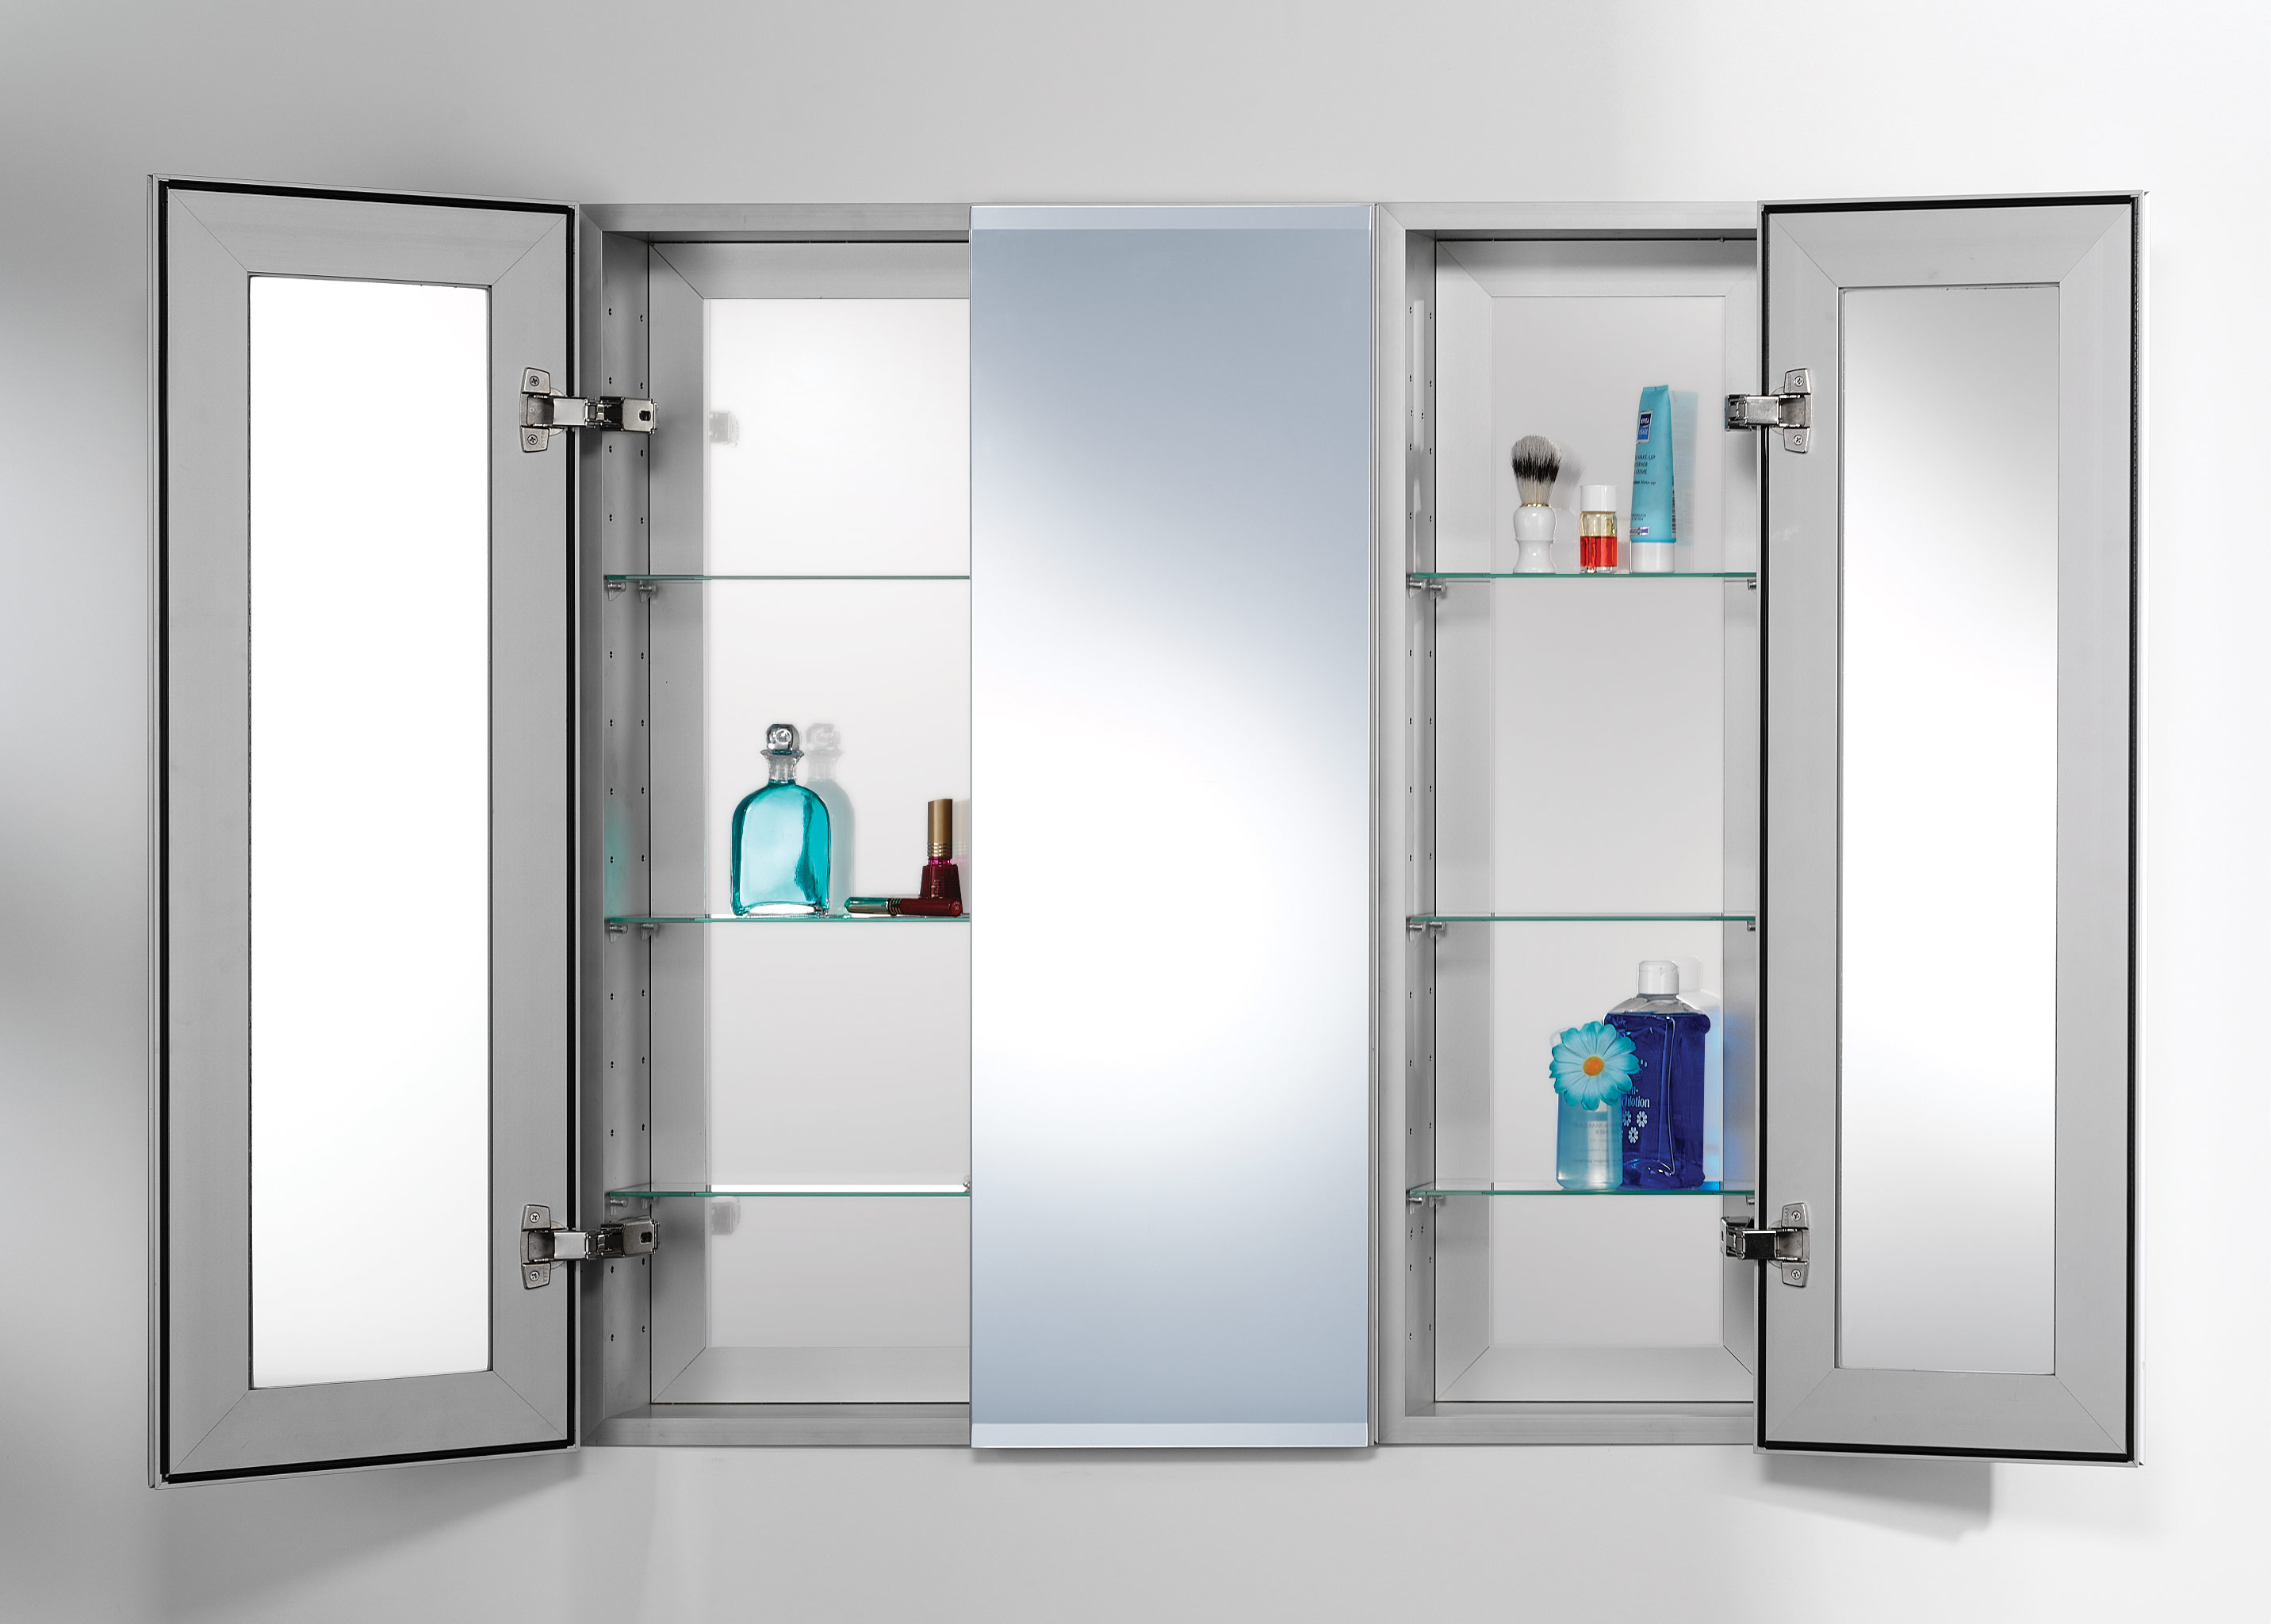 Bathroom Medicine Cabinets – With Lights, Recessed, Mirrored